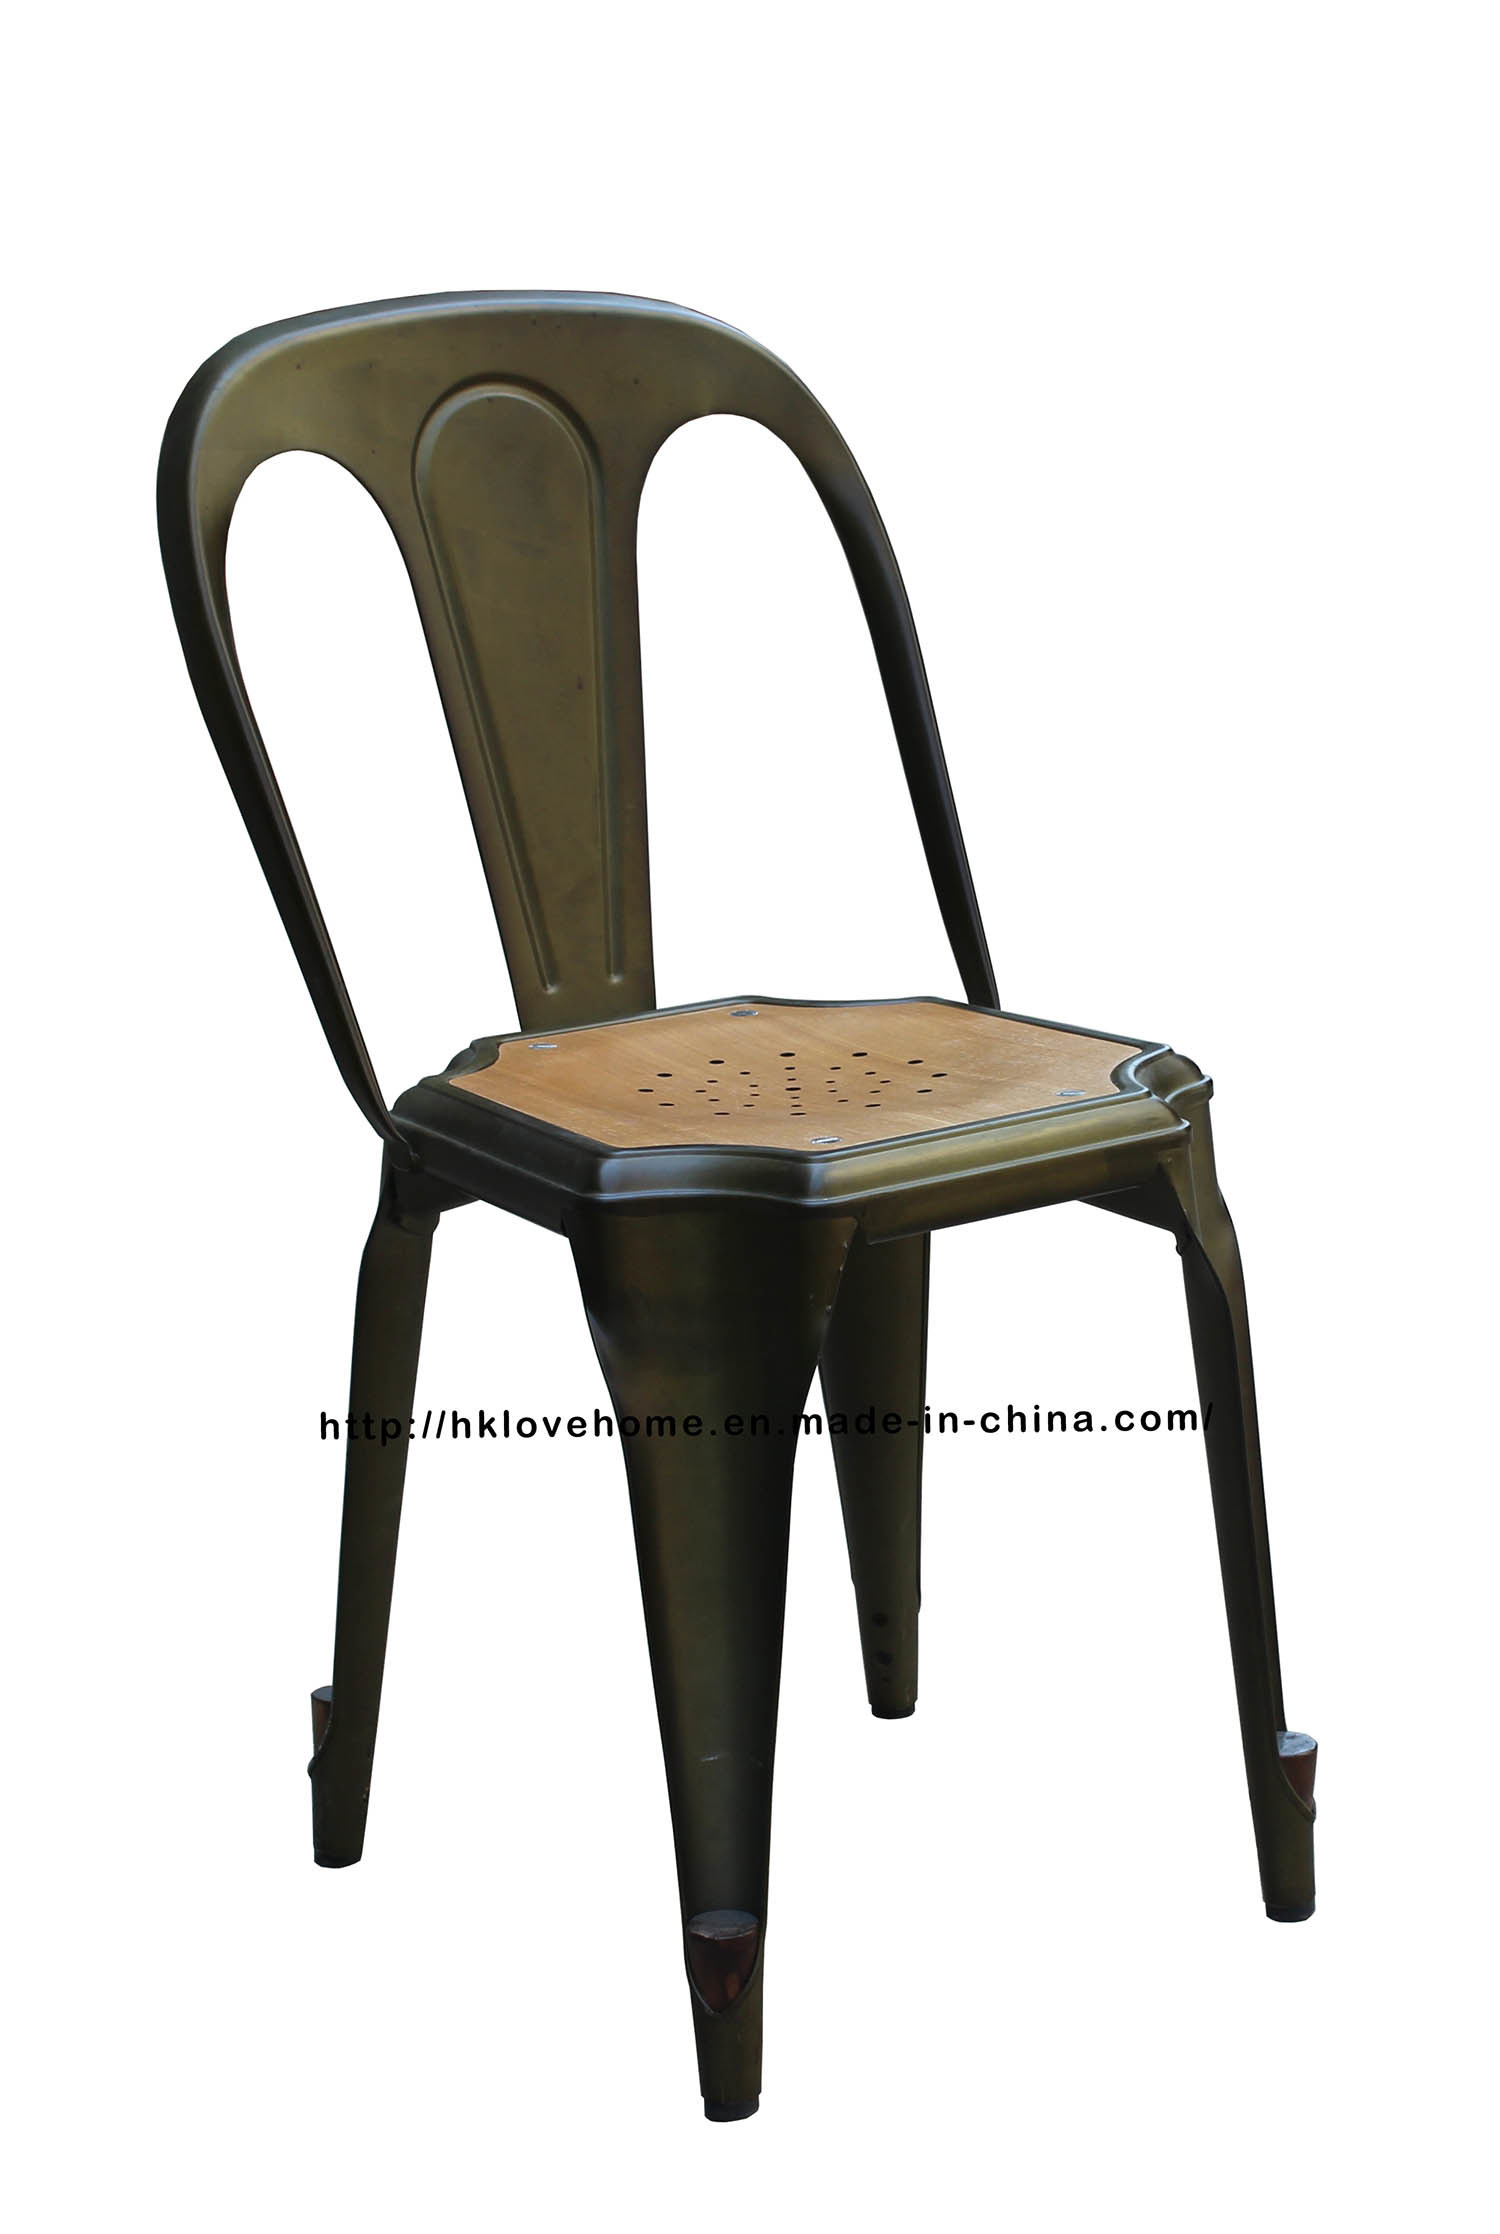 Industrial Tolix Vintage Armand Metal Dining Restaurant Coffee Chair